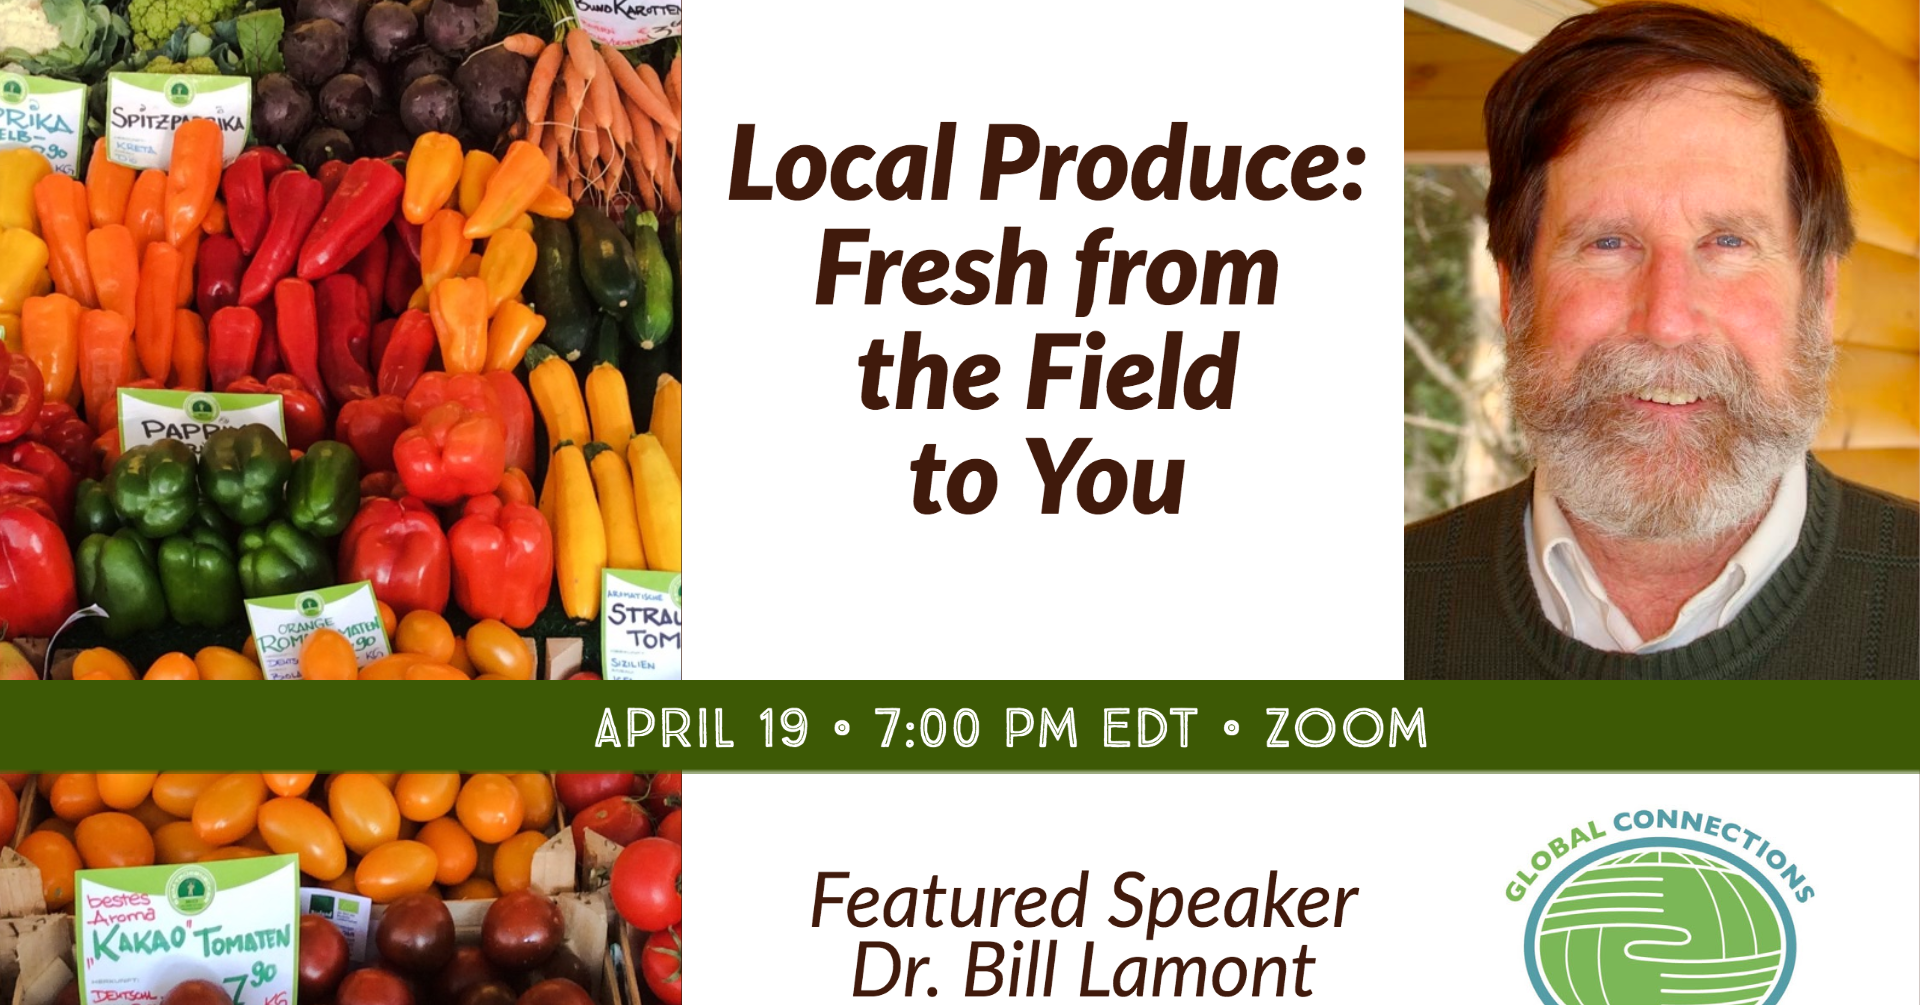 Keystone Culture: Local Produce: Fresh from the Field to You